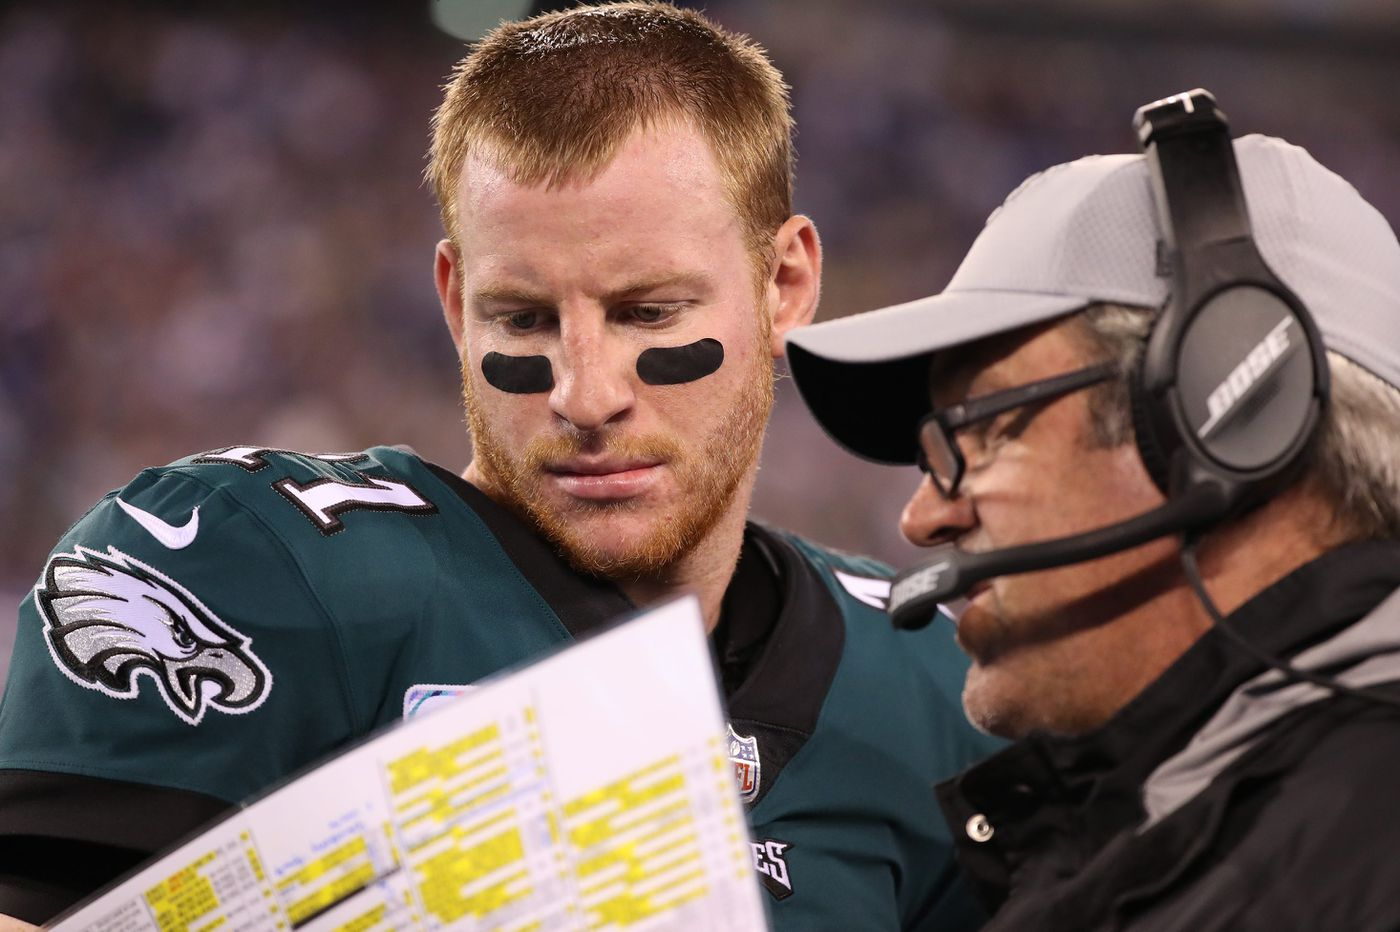 Unlike the dinosaurs in the NFC East, the Eagles are a fine fit for the modern NFL | Mike Sielski